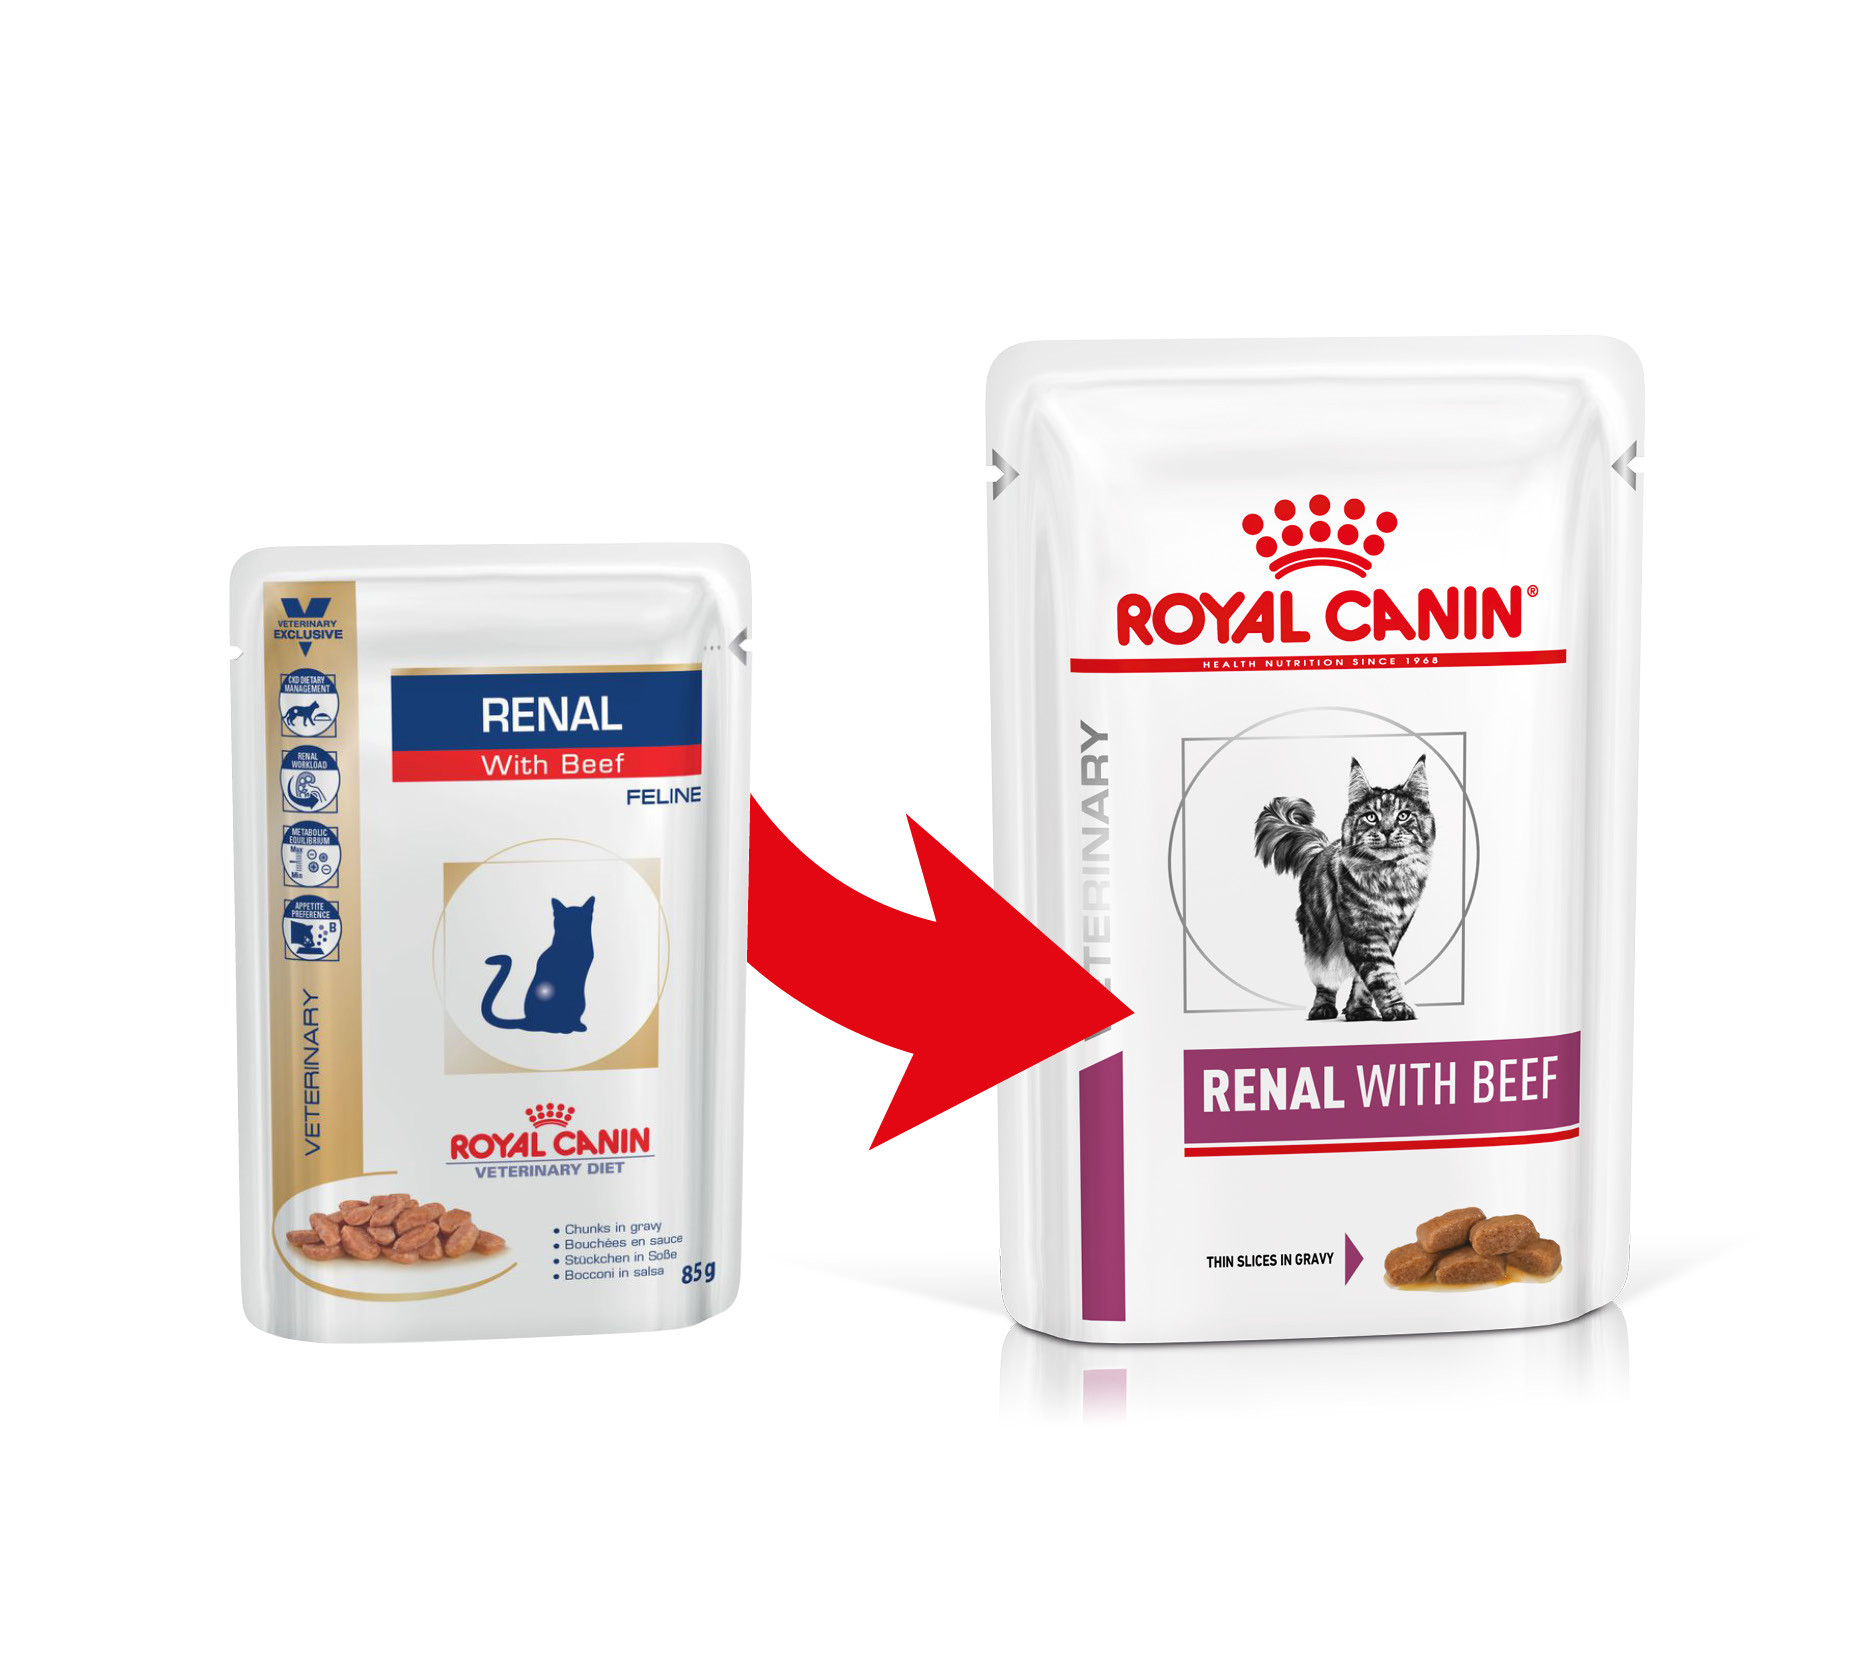 Royal Canin Veterinary Diet Renal con Manzo cibo umido per gatto